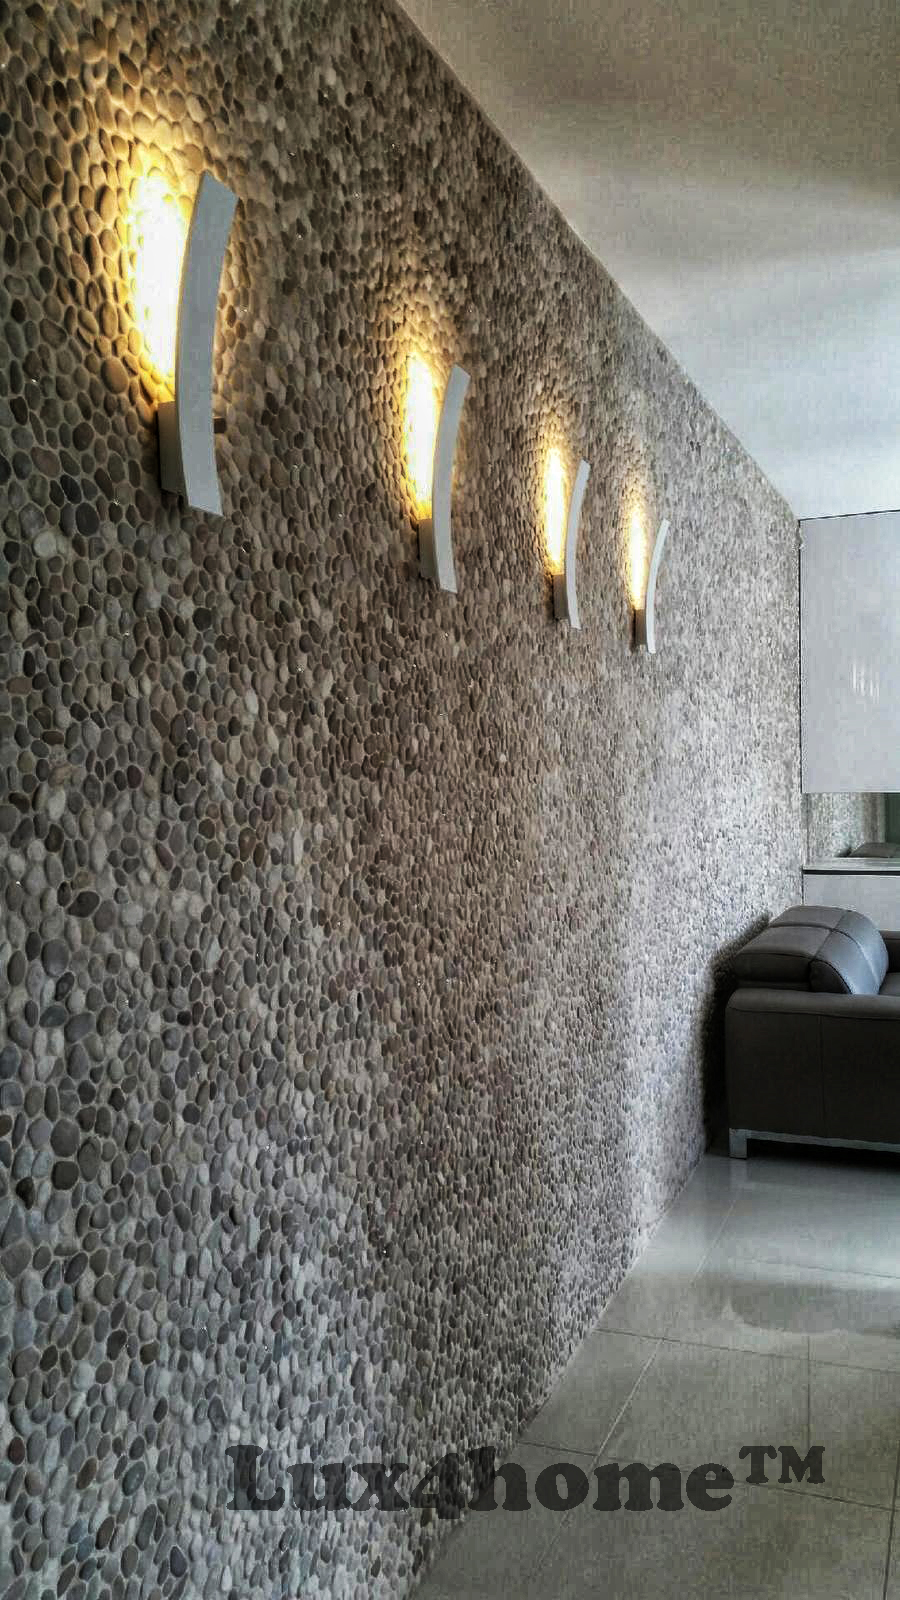 Luxury Apartment With Pebble Tiles On Walls Beige Pebble Lux4home Com